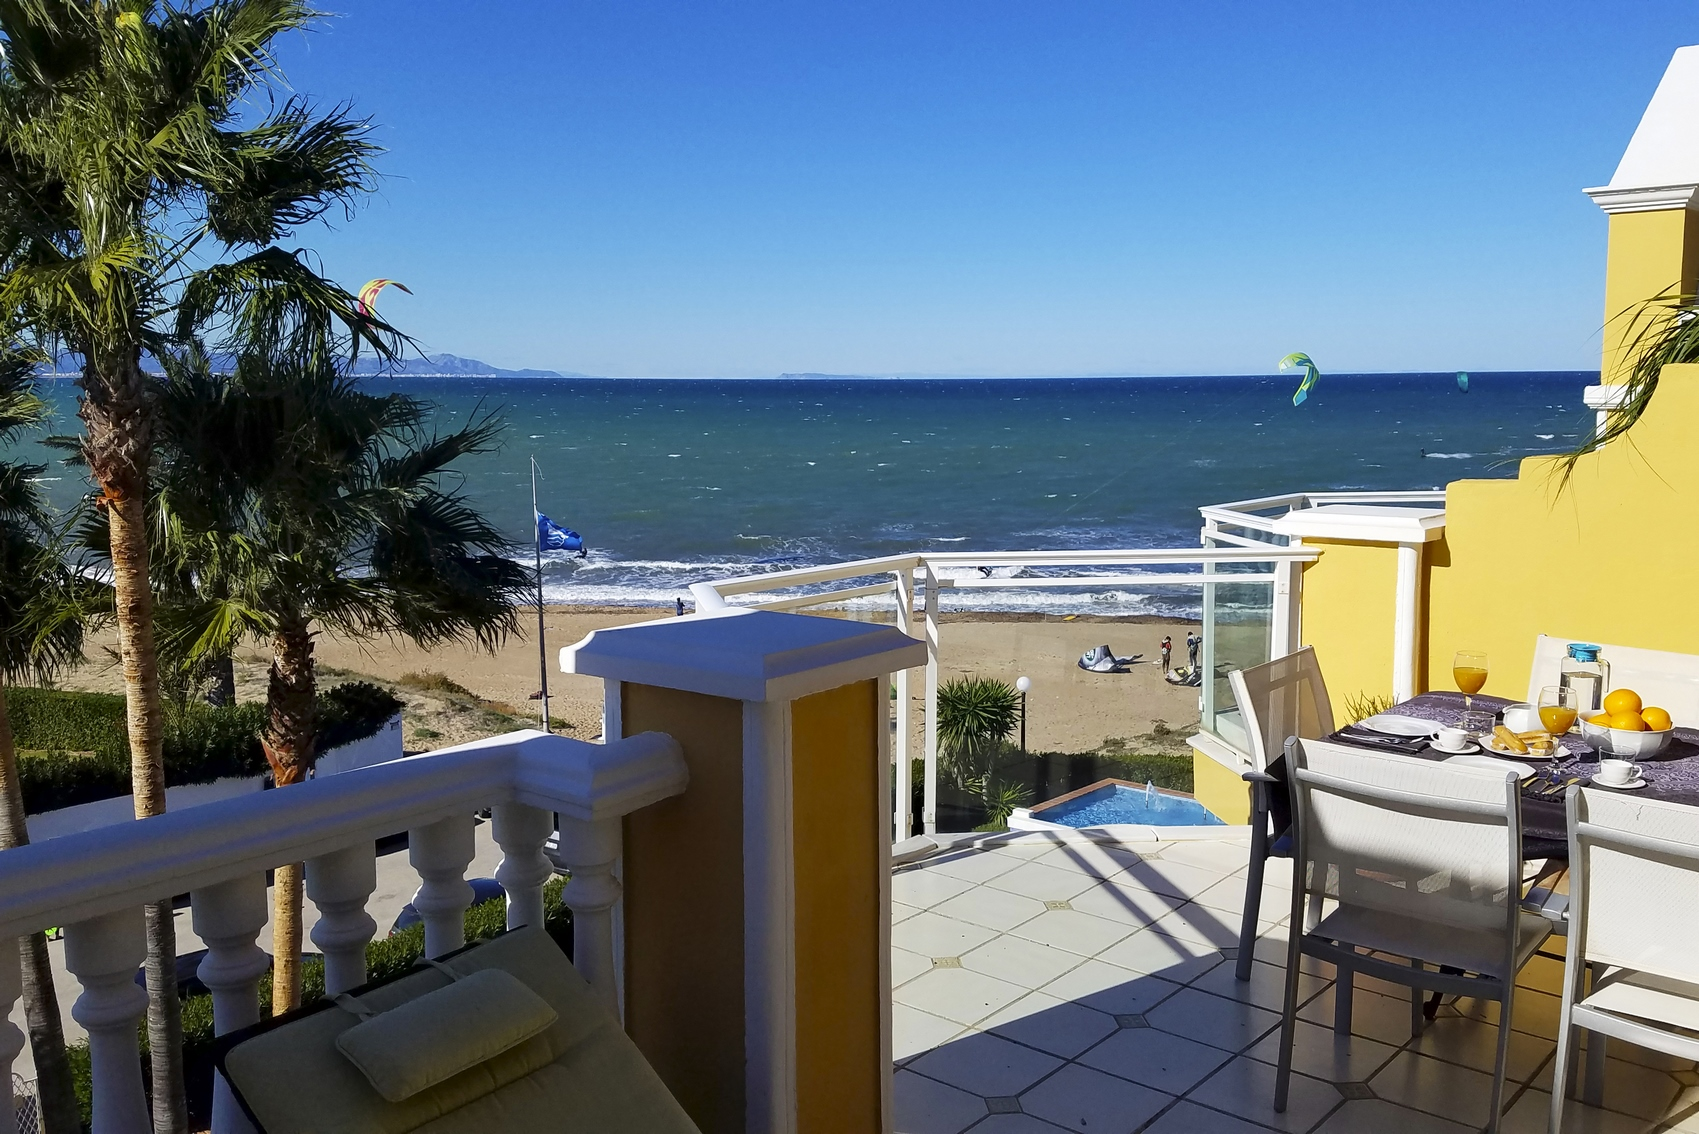 AT4401 Terrazas y Piscinas interminables en la Playa, Lovely and comfortable holiday house in Denia, on the Costa Blanca, Spain  with communal pool for 10 persons.....